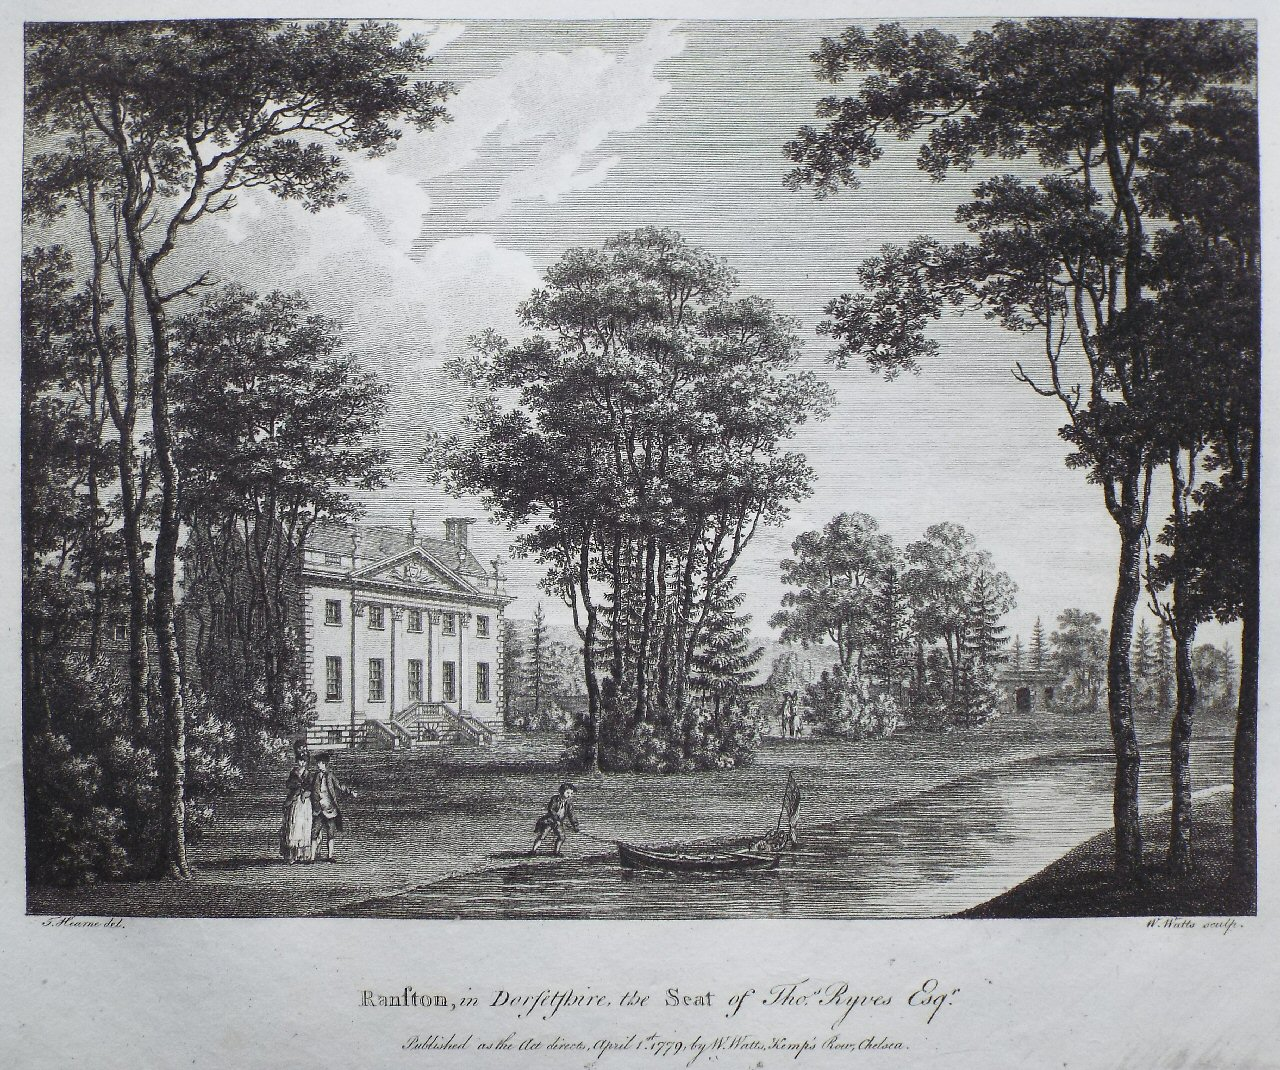 Print - Ranston, in Dorsetshire, the Seat of Thos Ryves Esqr - Watts